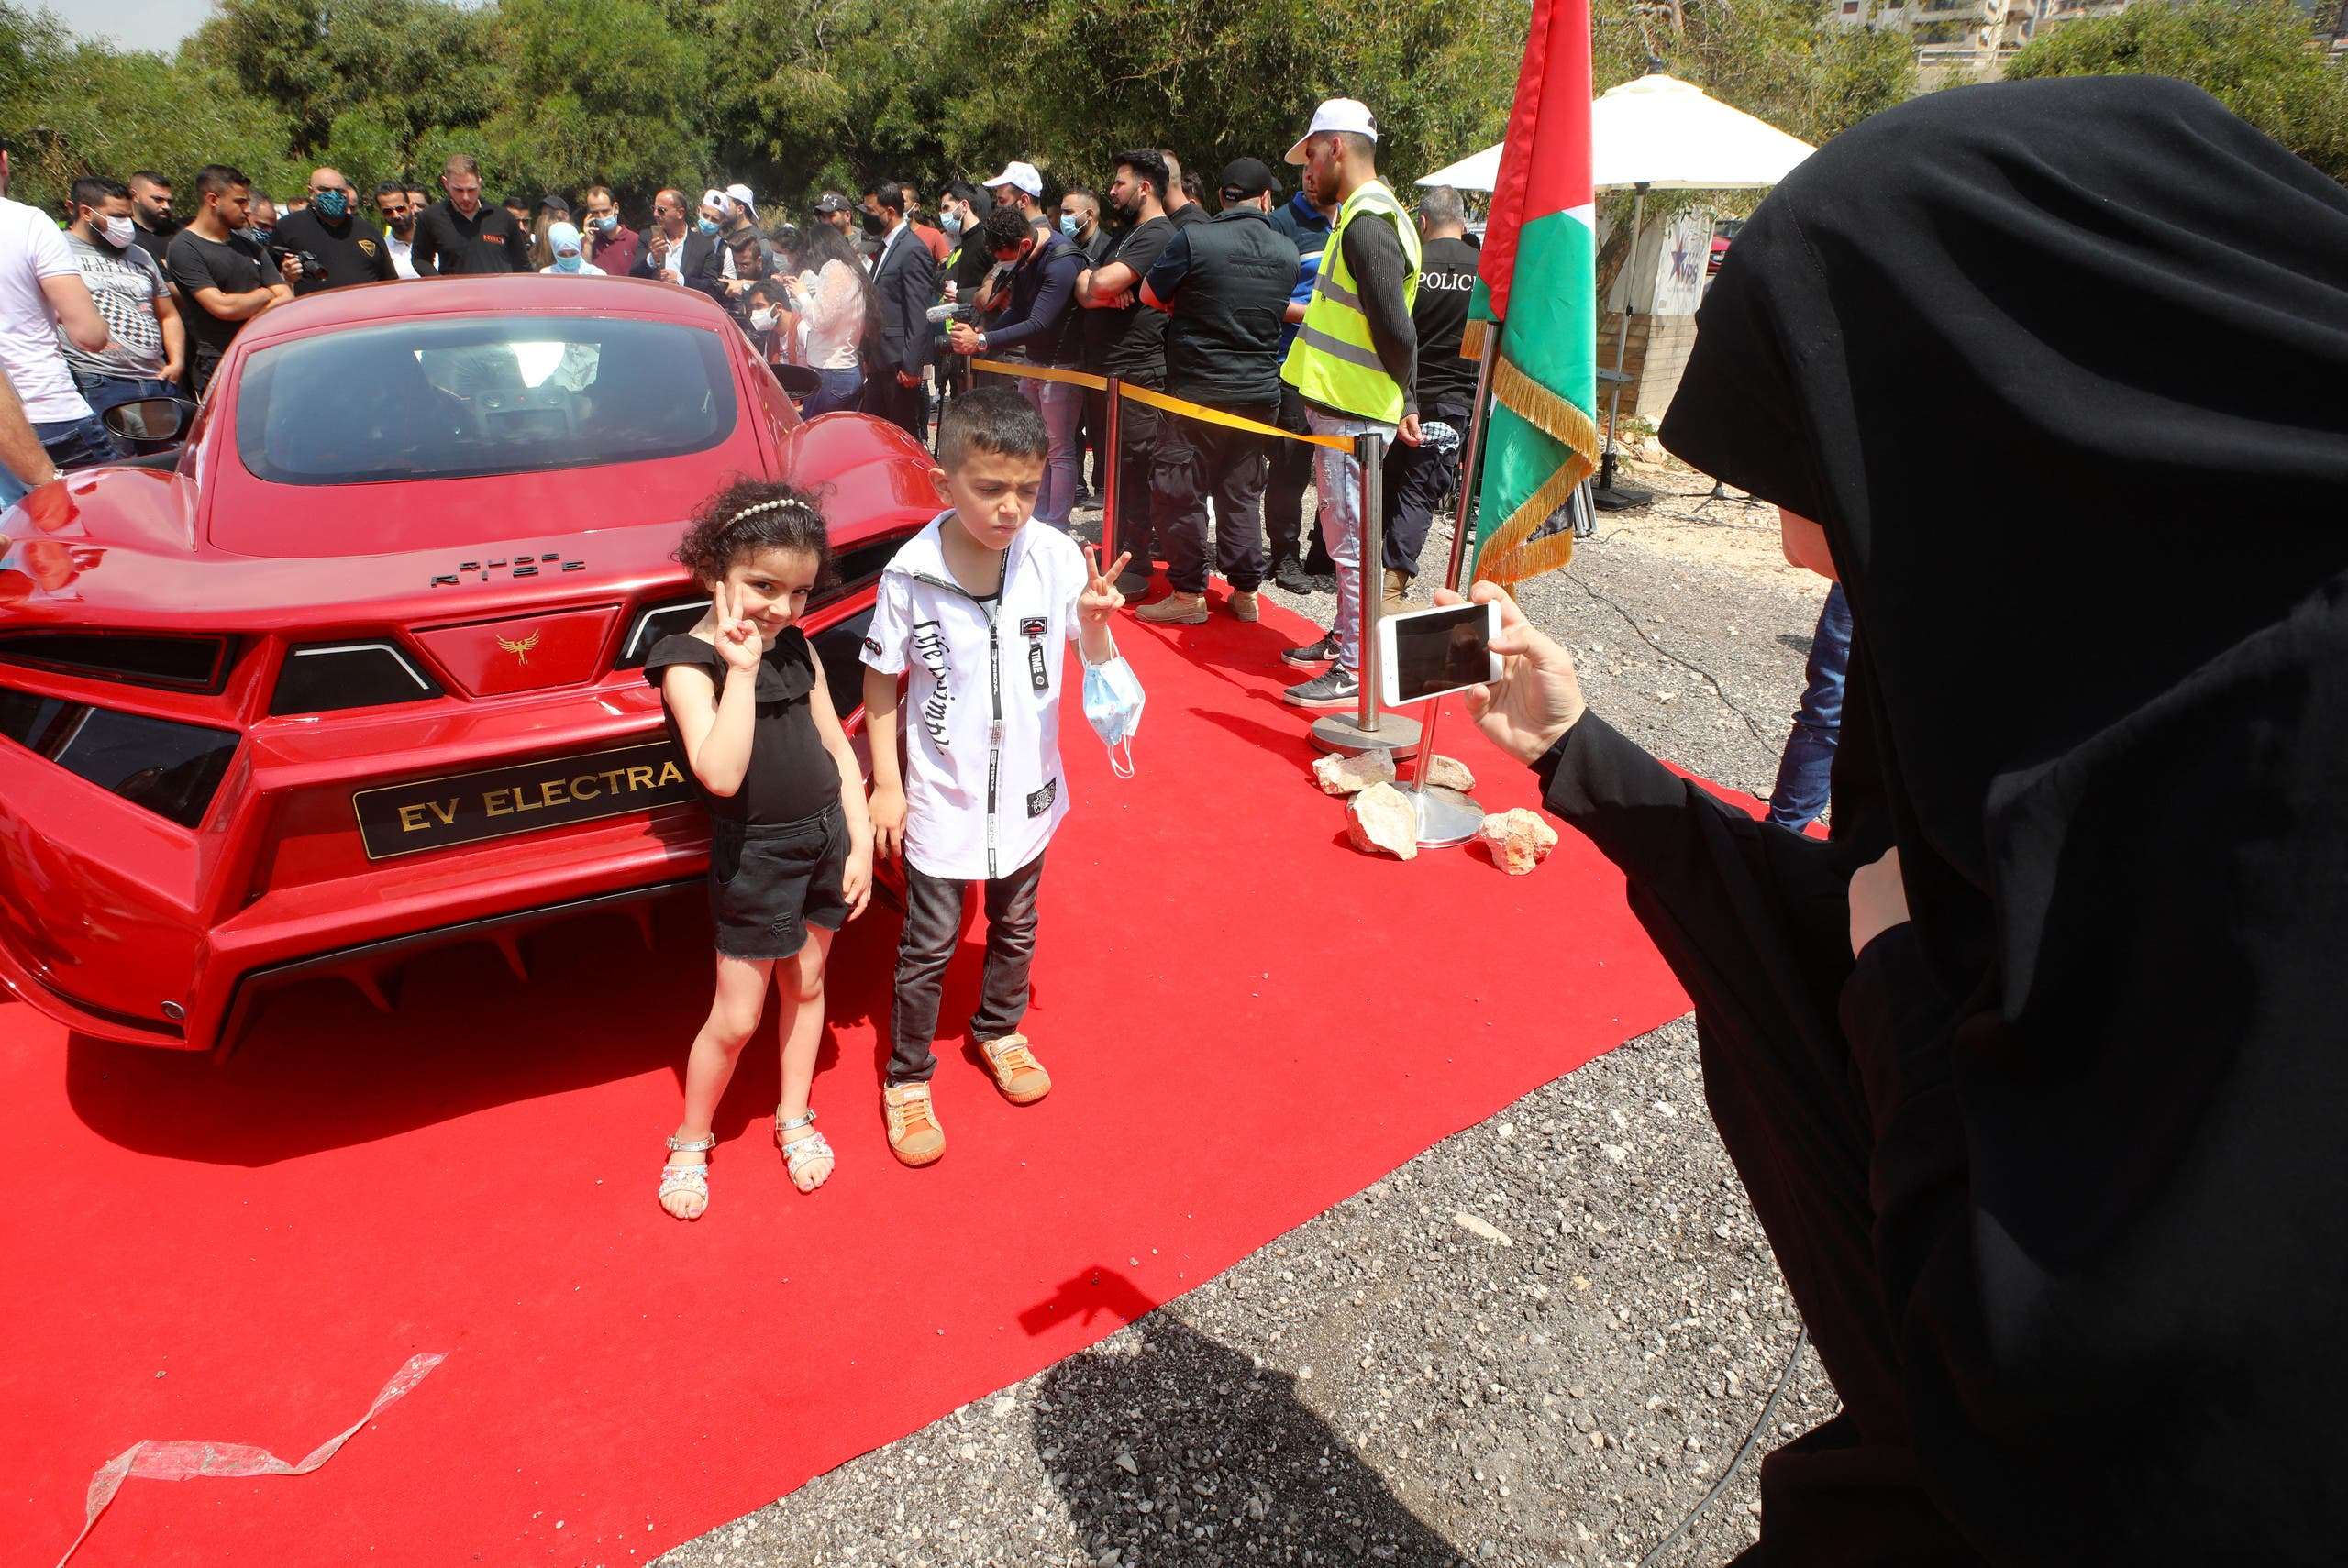 A woman takes pictures of children posing by the Quds Rise, the first ever electric car produced in Lebanon, during an unveiling ceremony in Khaldeh, south of the capital Beirut, on April 24, 2021. (AFP)